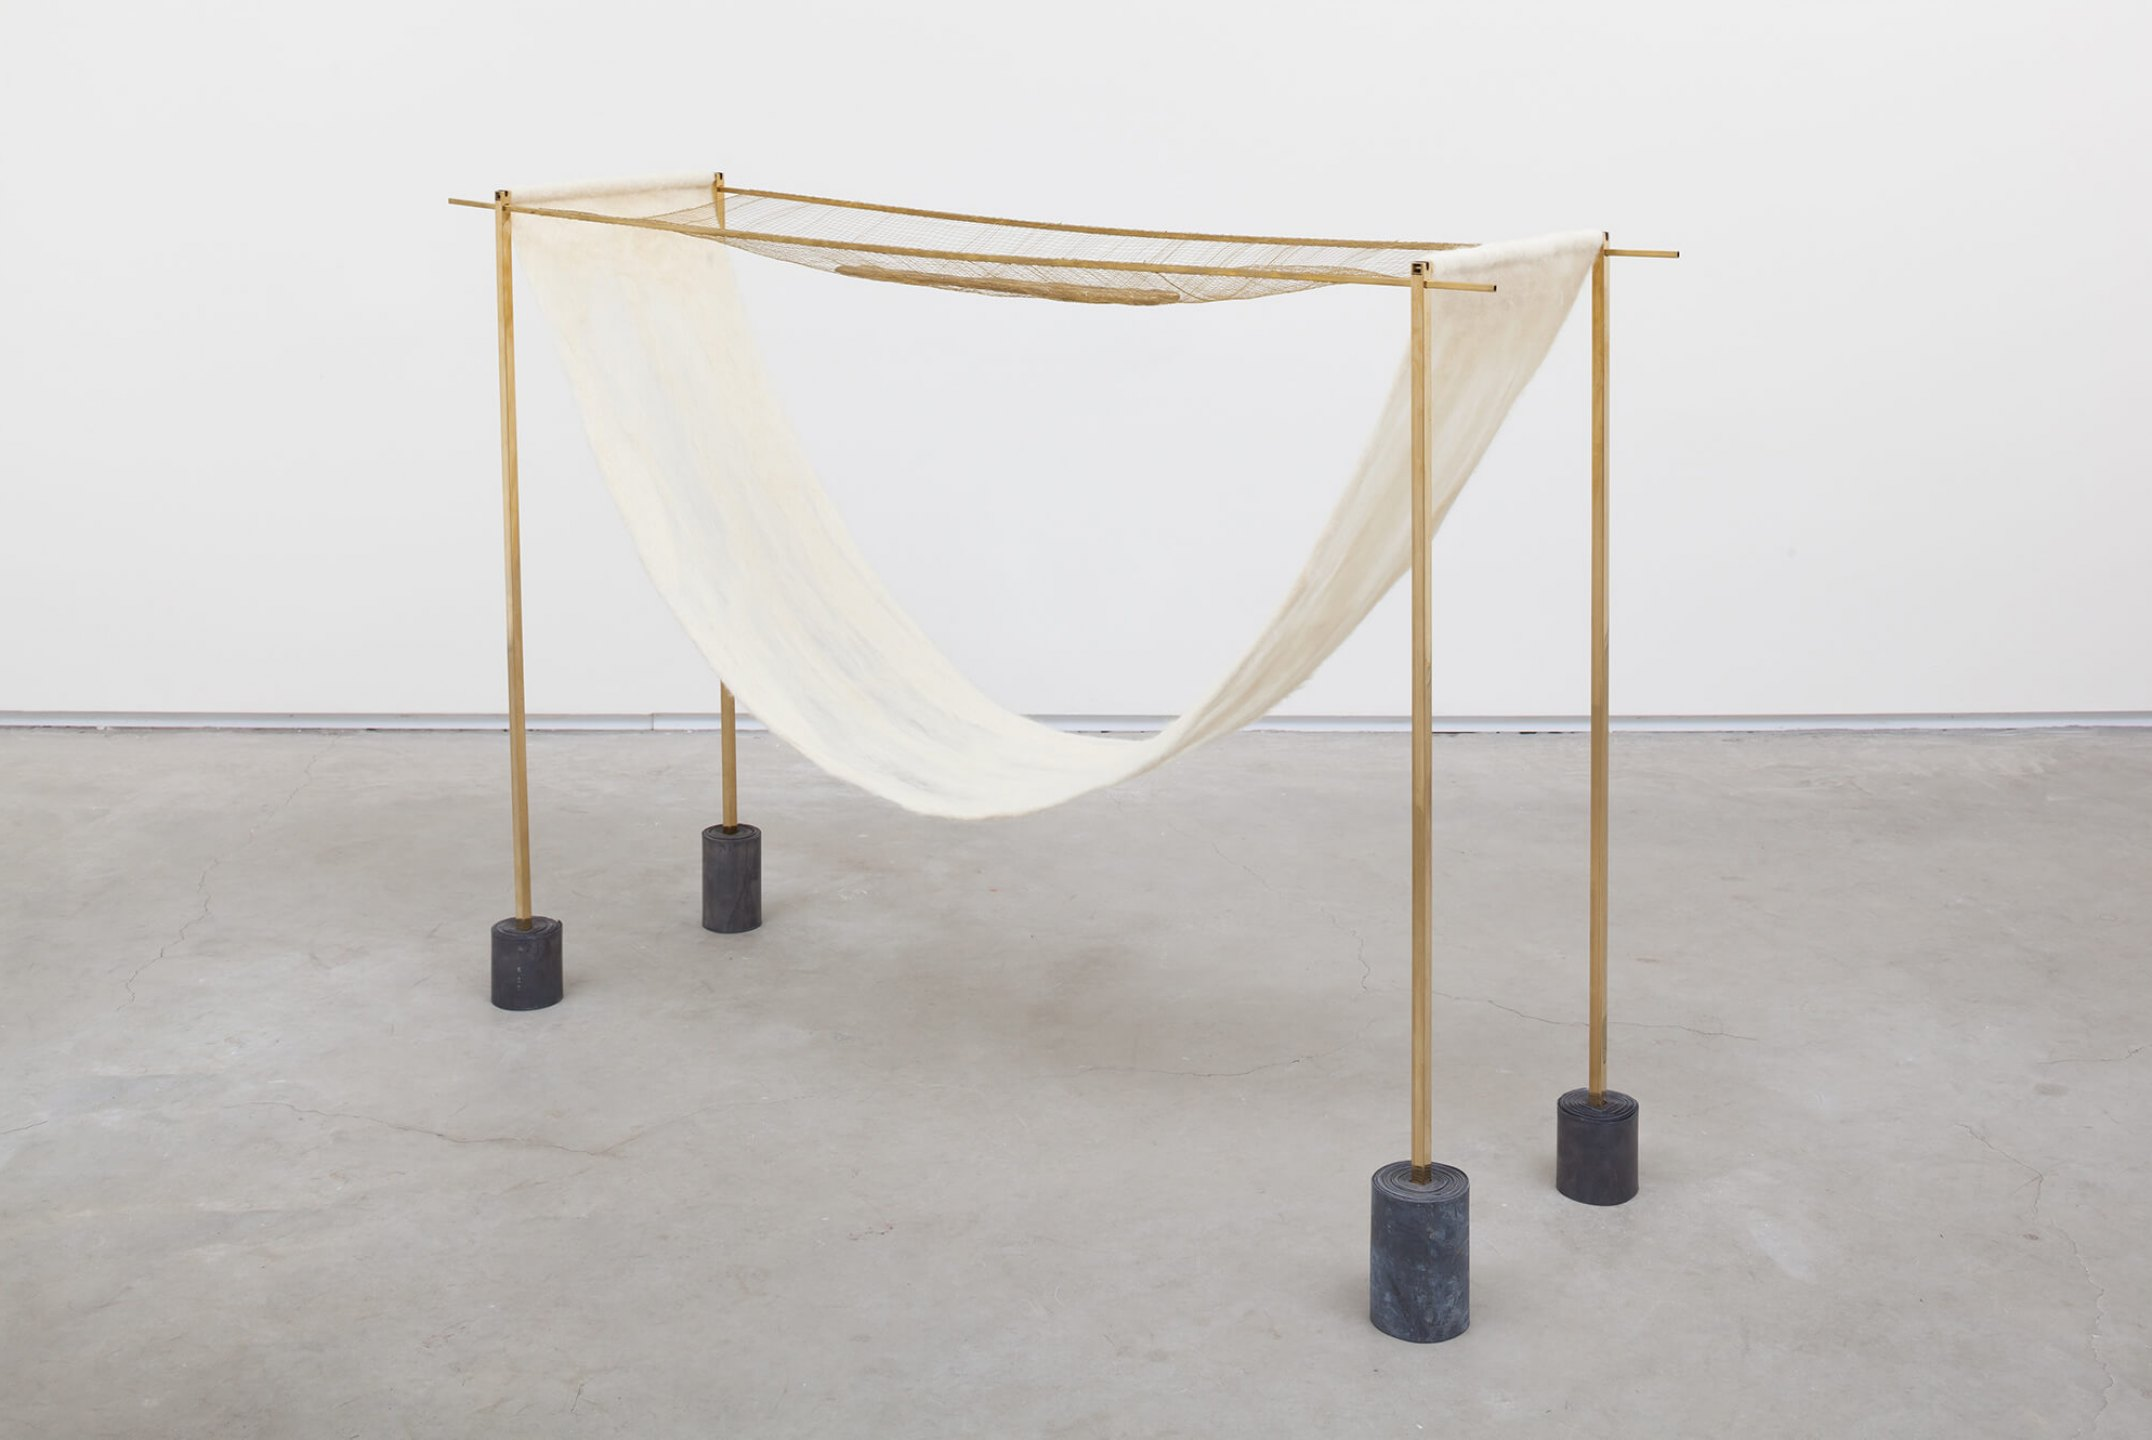 Paloma Bosquê,<em> Jirau</em>, 2016, lead sheet, rods and fabric of brass, wool felted by hand and cast bronze, 90 × 132 × 31,5 cm - Mendes Wood DM